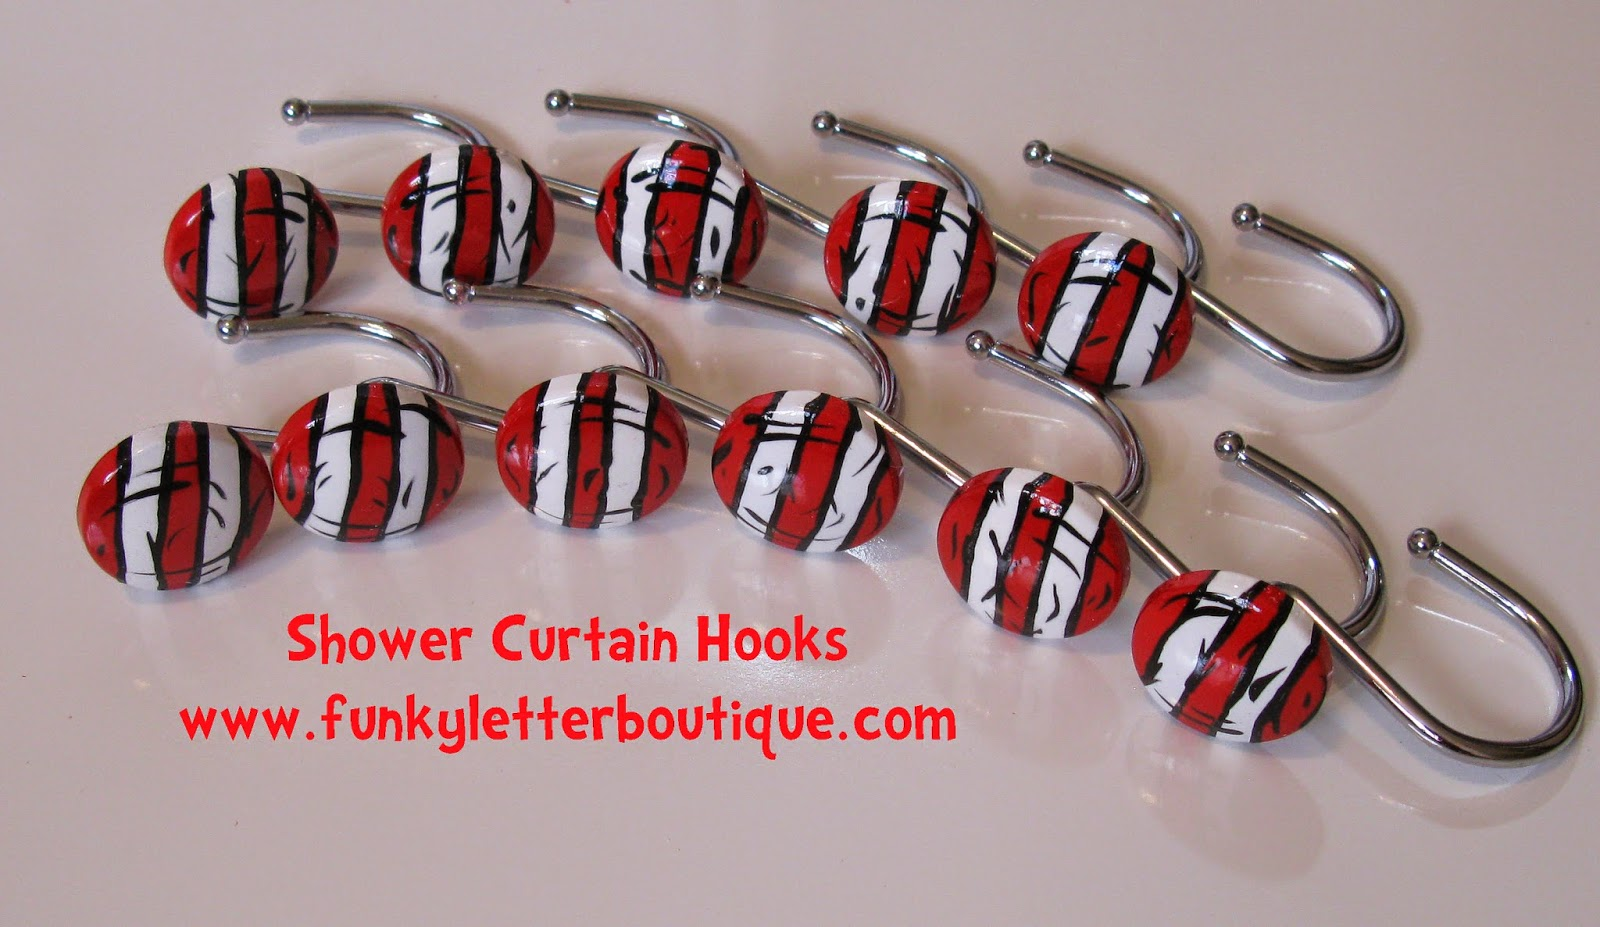 Pottery barn dr seuss shower curtain - Dr Seuss Cat In The Hat Striped Shower Curtain Hooks